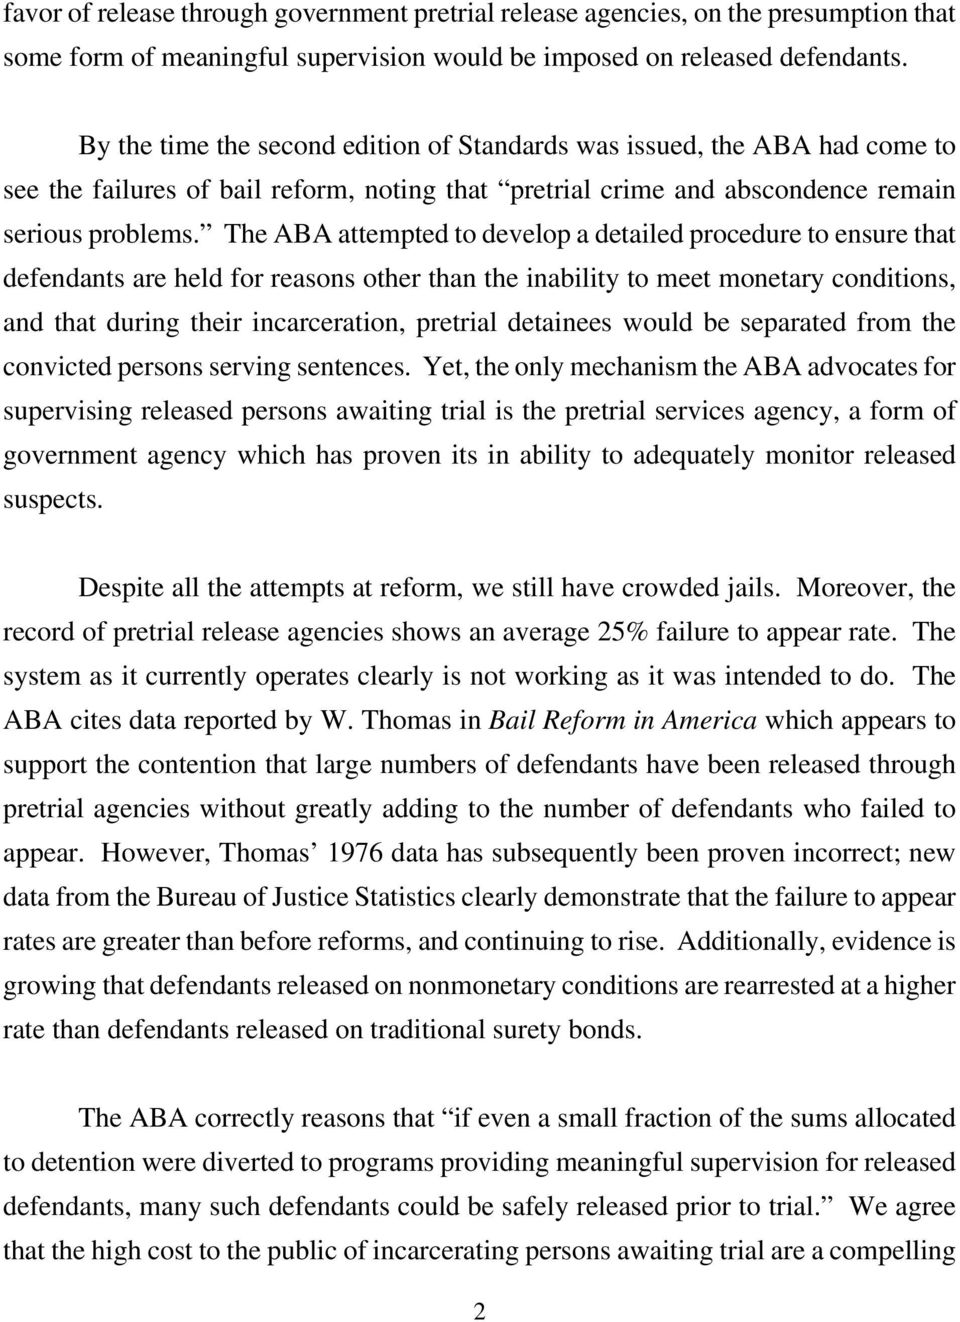 The ABA attempted to develop a detailed procedure to ensure that defendants are held for reasons other than the inability to meet monetary conditions, and that during their incarceration, pretrial